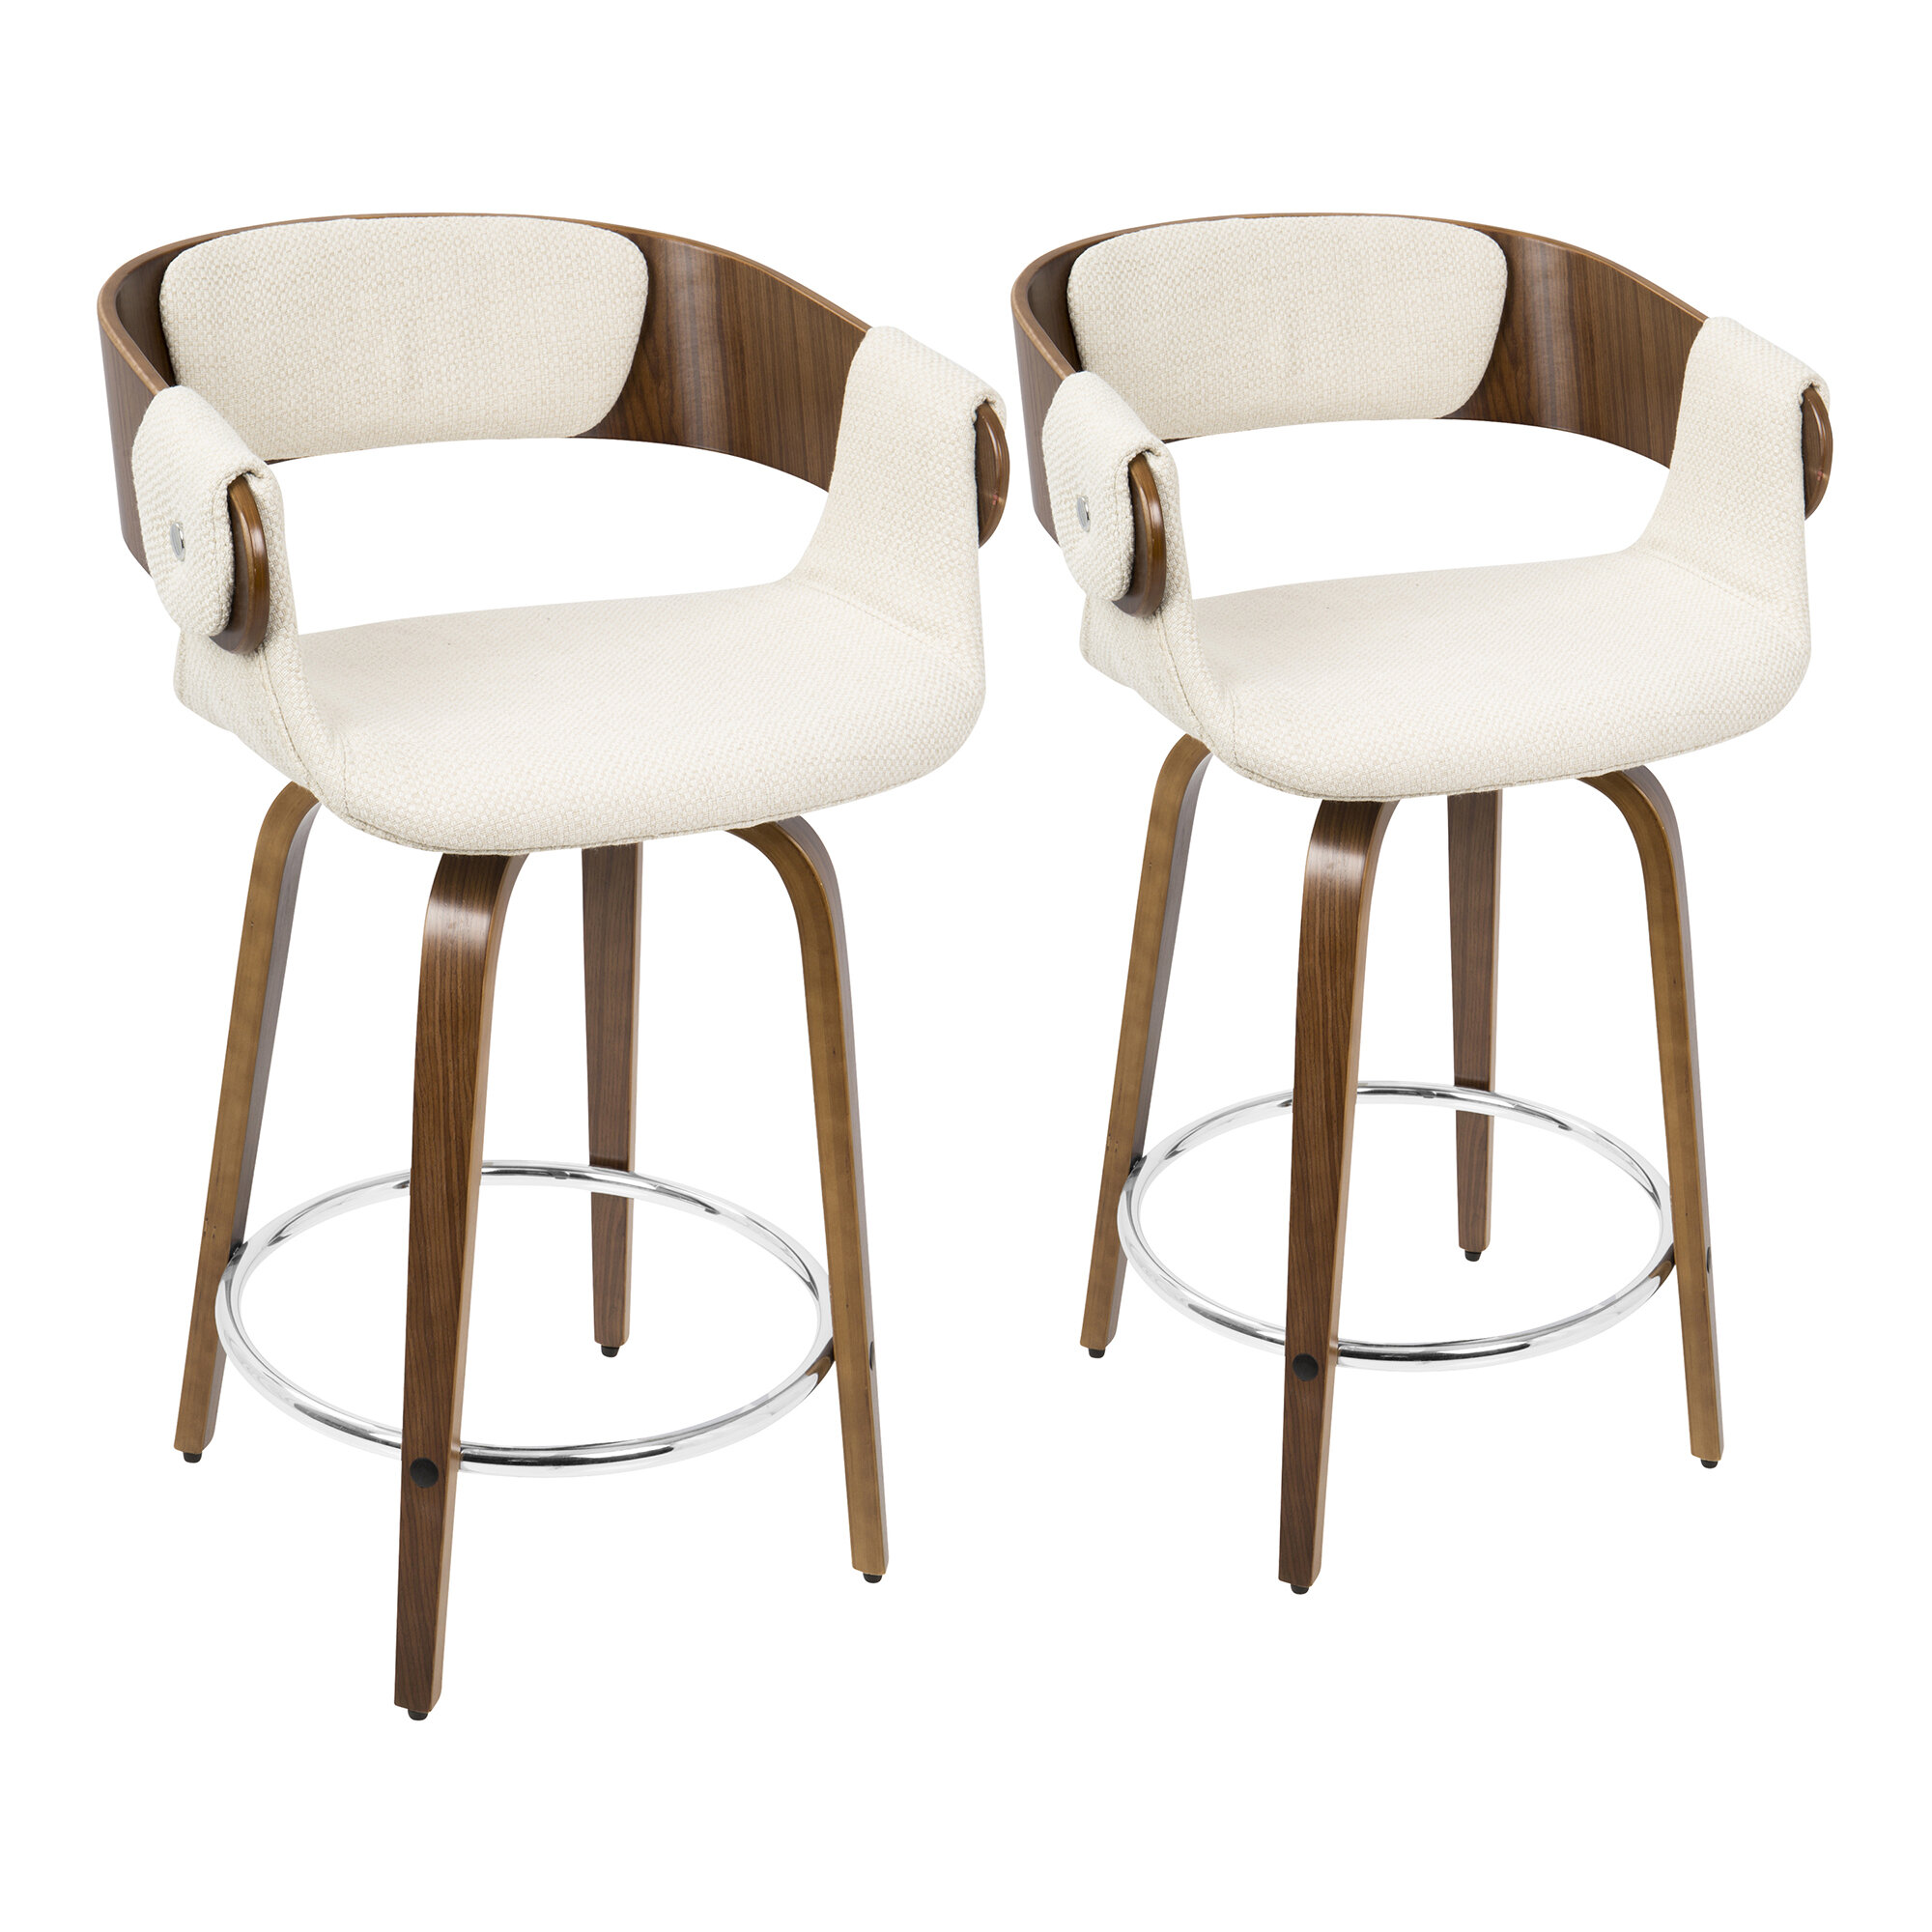 Excellent Lexie 24 Swivel Bar Stool Inzonedesignstudio Interior Chair Design Inzonedesignstudiocom